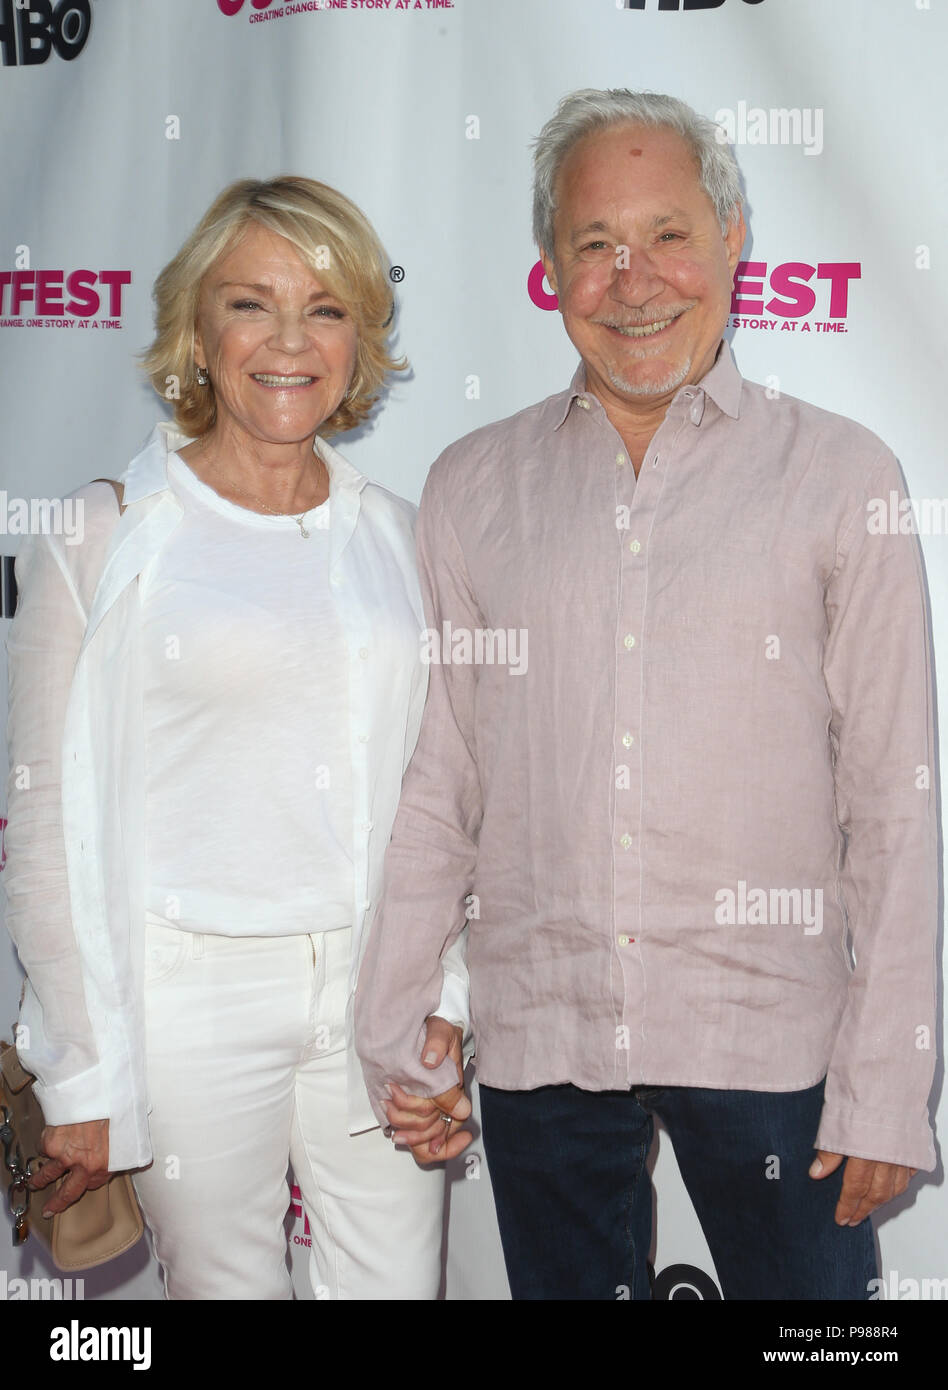 Los Angeles Ca Usa 15th July 2018 Stephanie Faracy Jeffrey Richman At The 2018 Outfest Los Angeles Screening Of Every Act Of Life At The Directors Guild Of America In Los Angeles She is known for playing supporting roles in films include heaven can wait (1978), scavenger hunt (1979), blind date (1987), the great outdoors. https www alamy com los angeles ca usa 15th july 2018 stephanie faracy jeffrey richman at the 2018 outfest los angeles screening of every act of life at the directors guild of america in los angeles california on july 15 2018 credit faye sadoumedia punchalamy live news image212238856 html